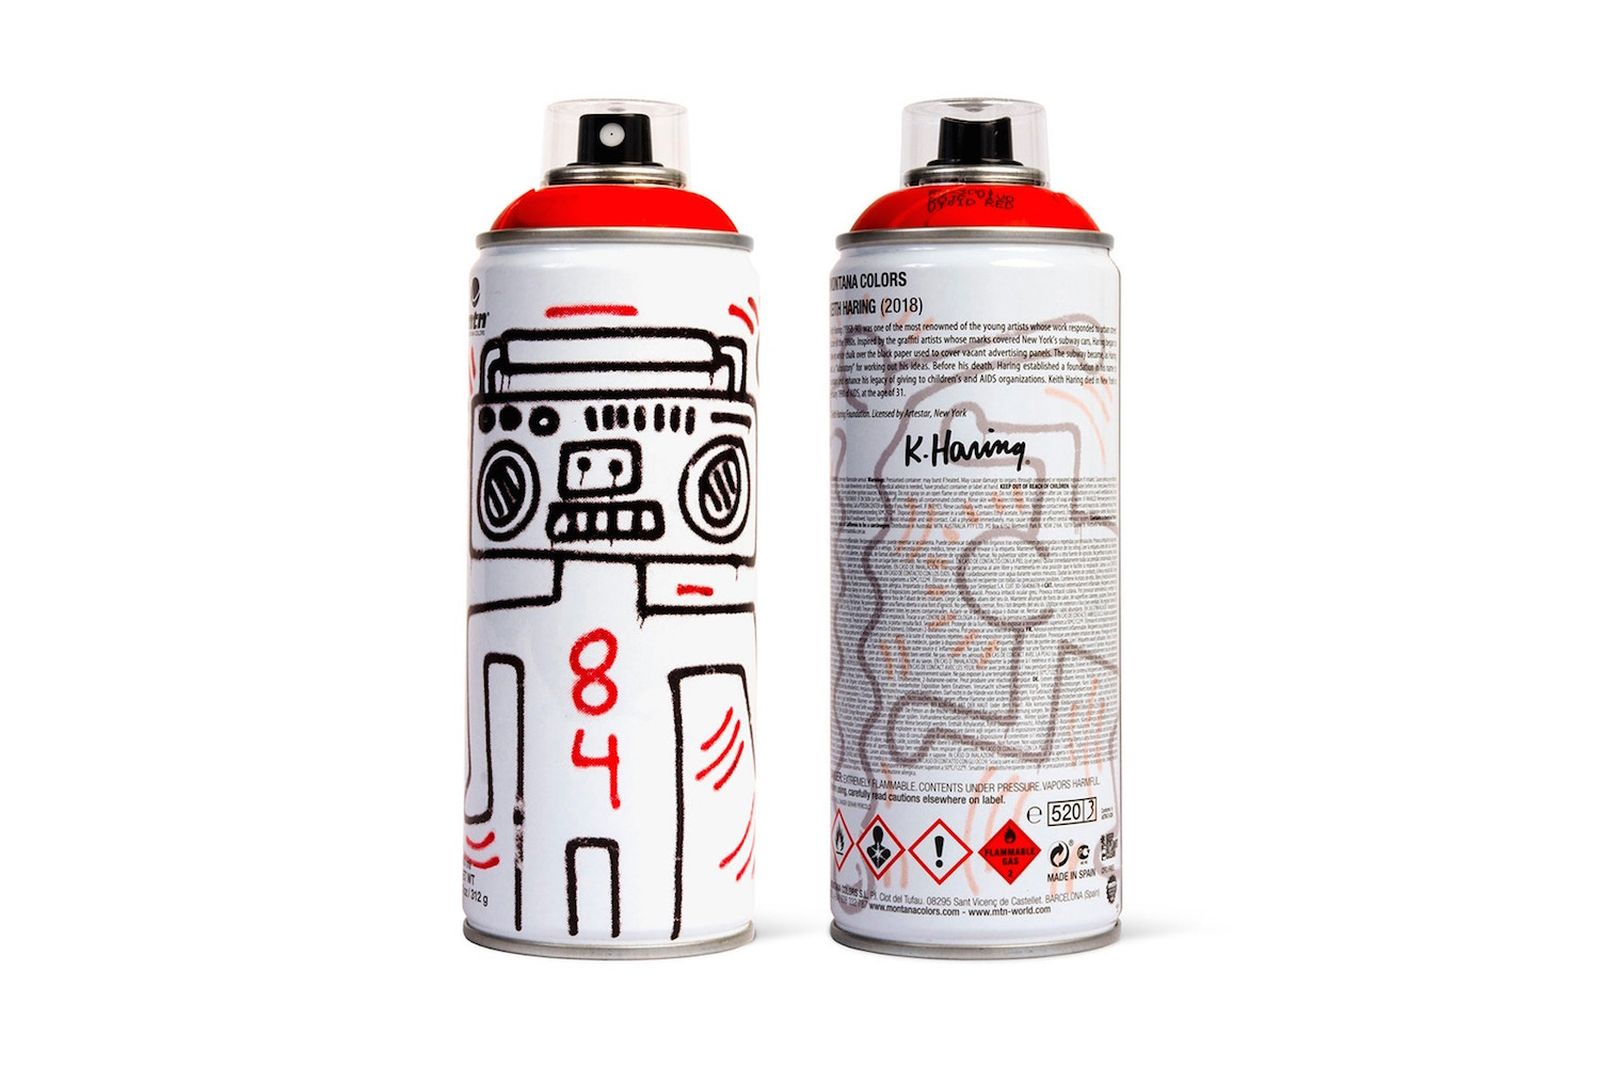 jean-michel-basquiat-keith-haring-spray-paint-cans-04